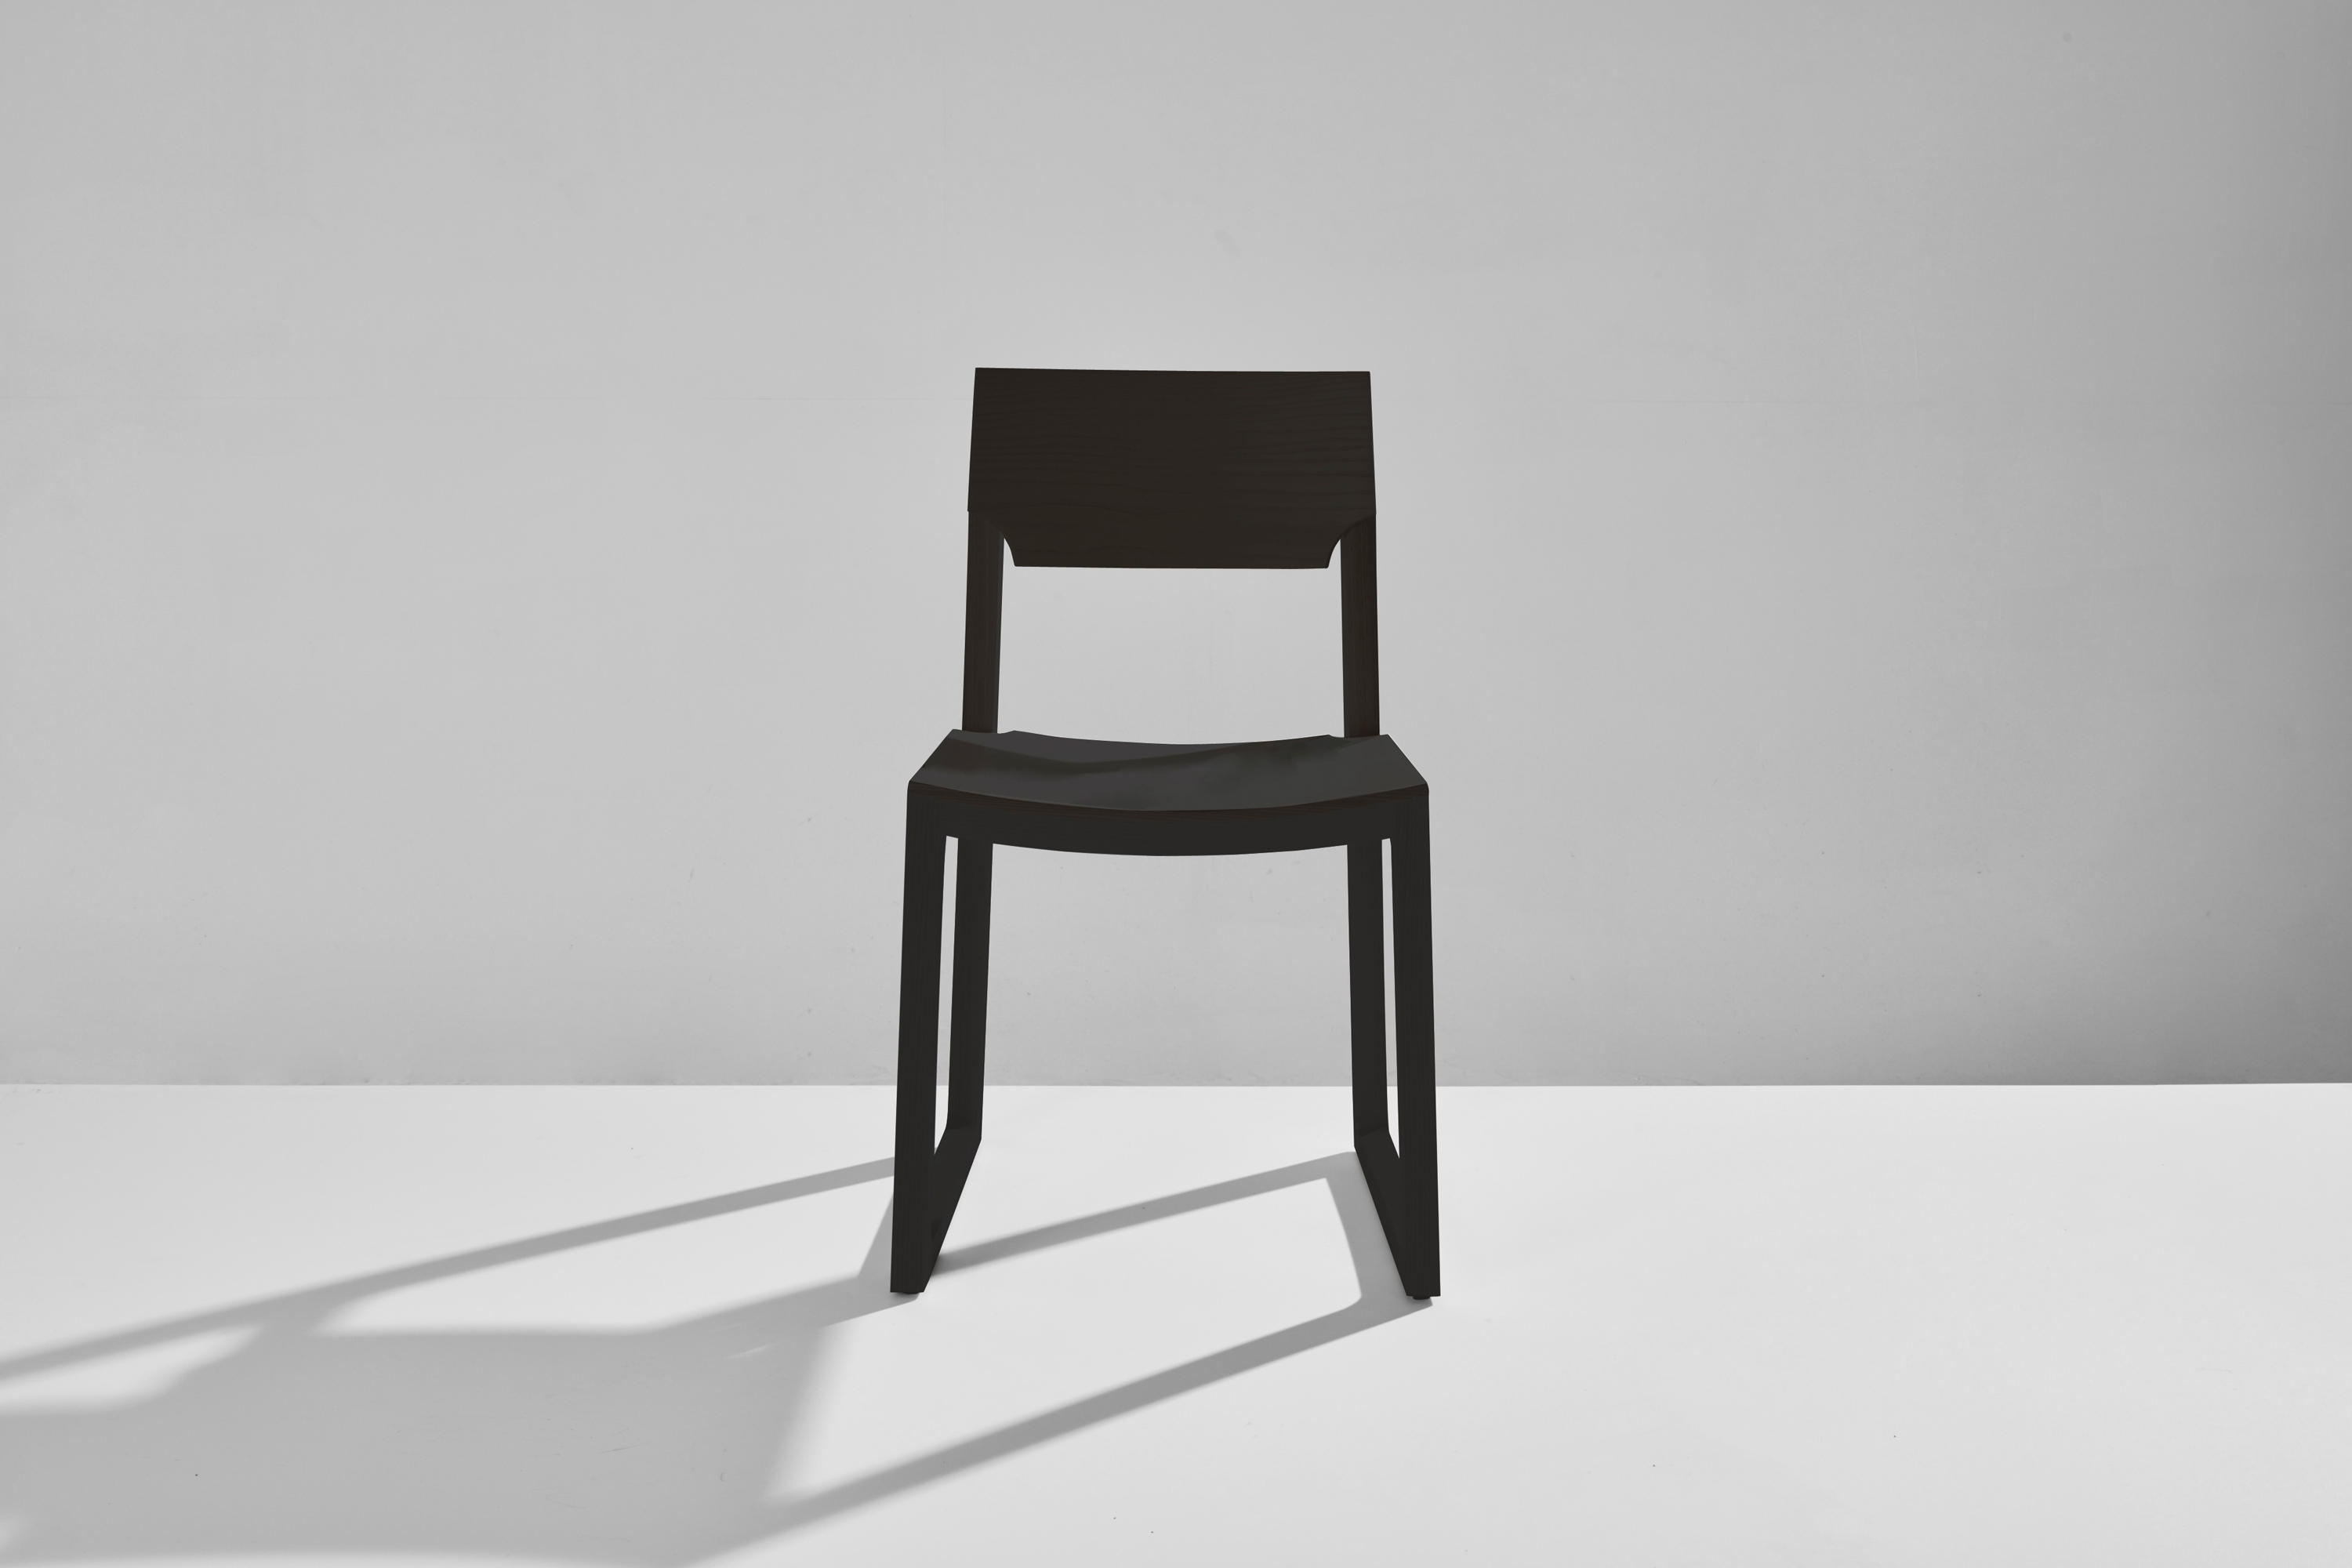 ... Cub Chair By DesignByThem ...